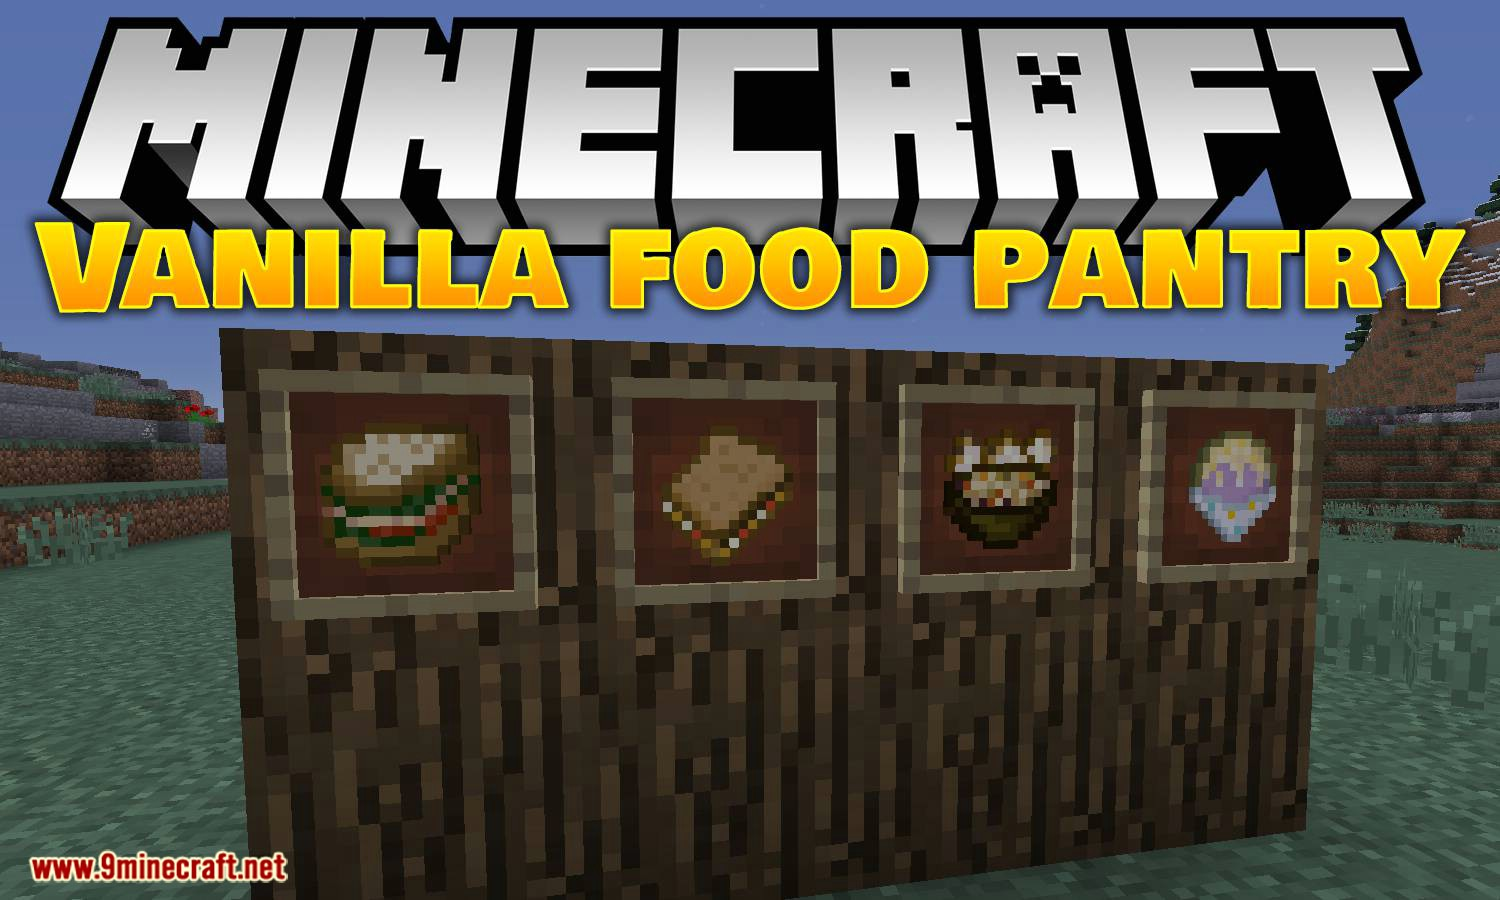 Vanilla Food Pantry Mod for minecraft logo